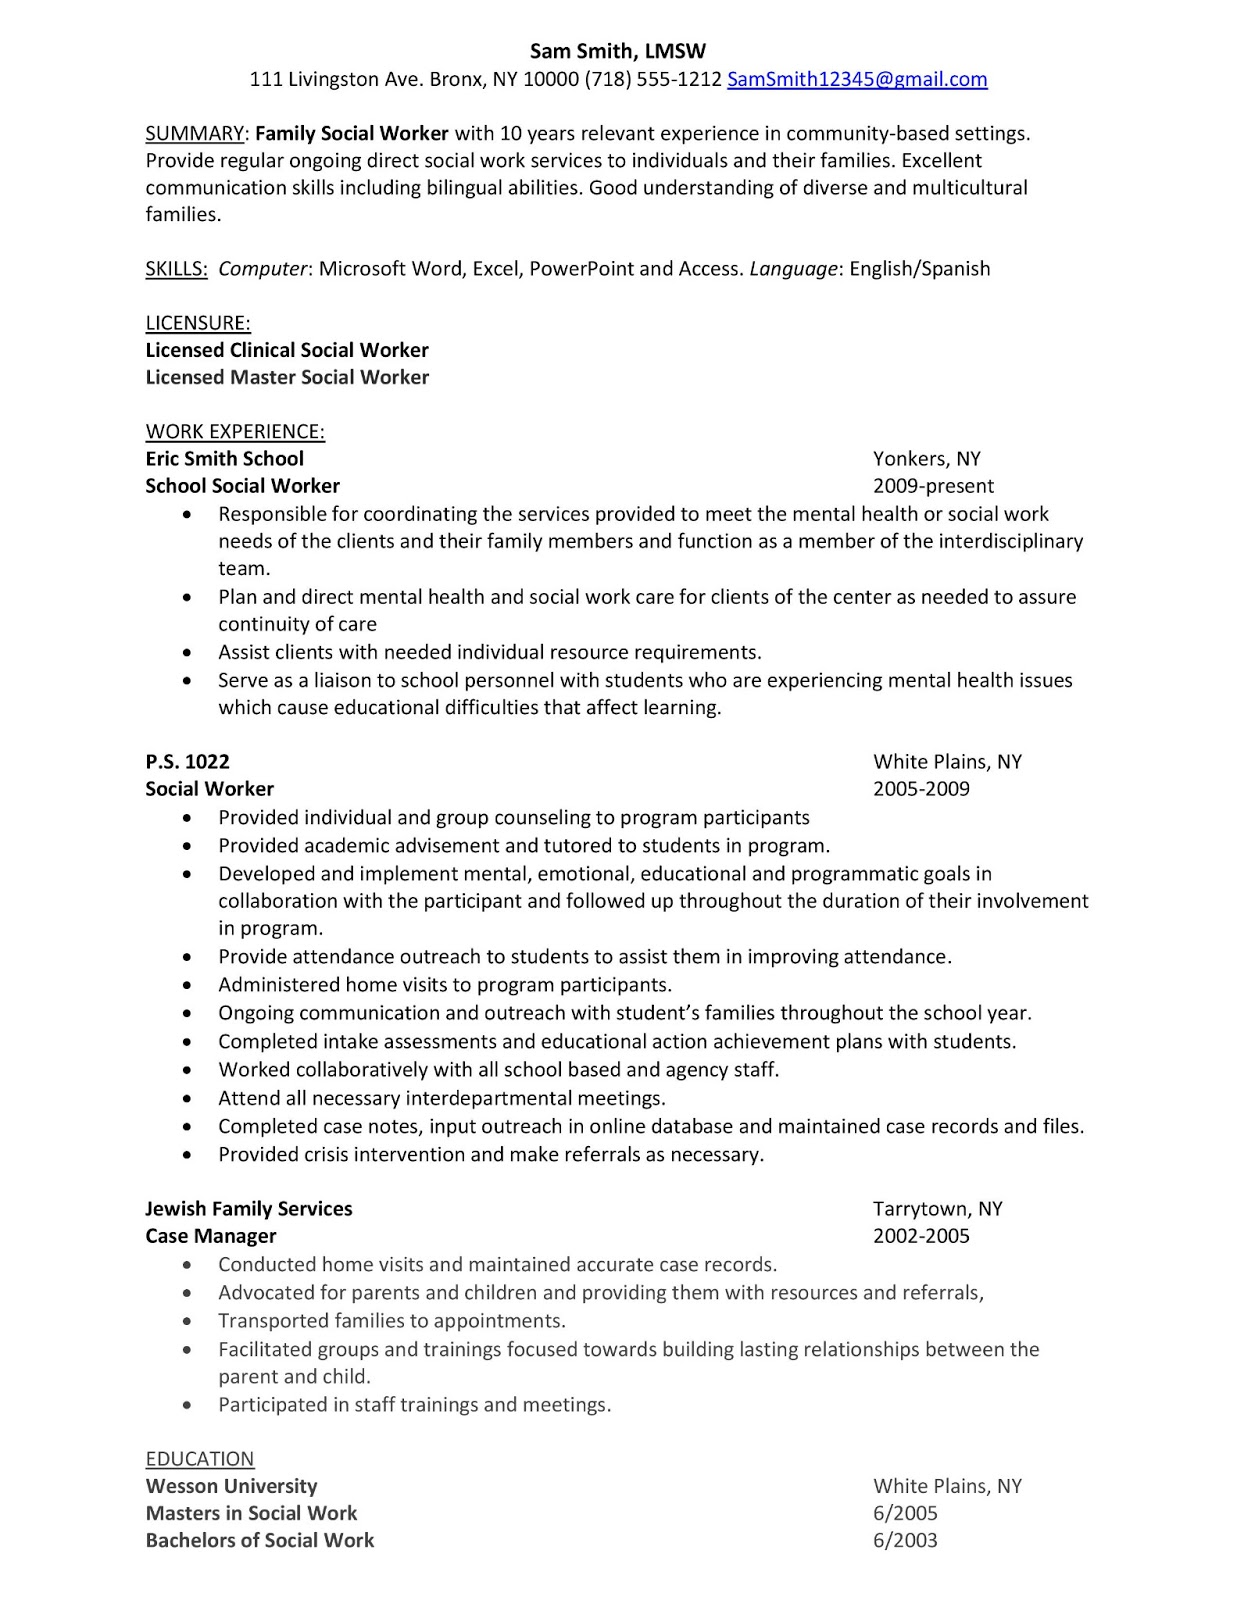 Wrestling Resume Sample Resume Family Social Worker Career Advice Pro